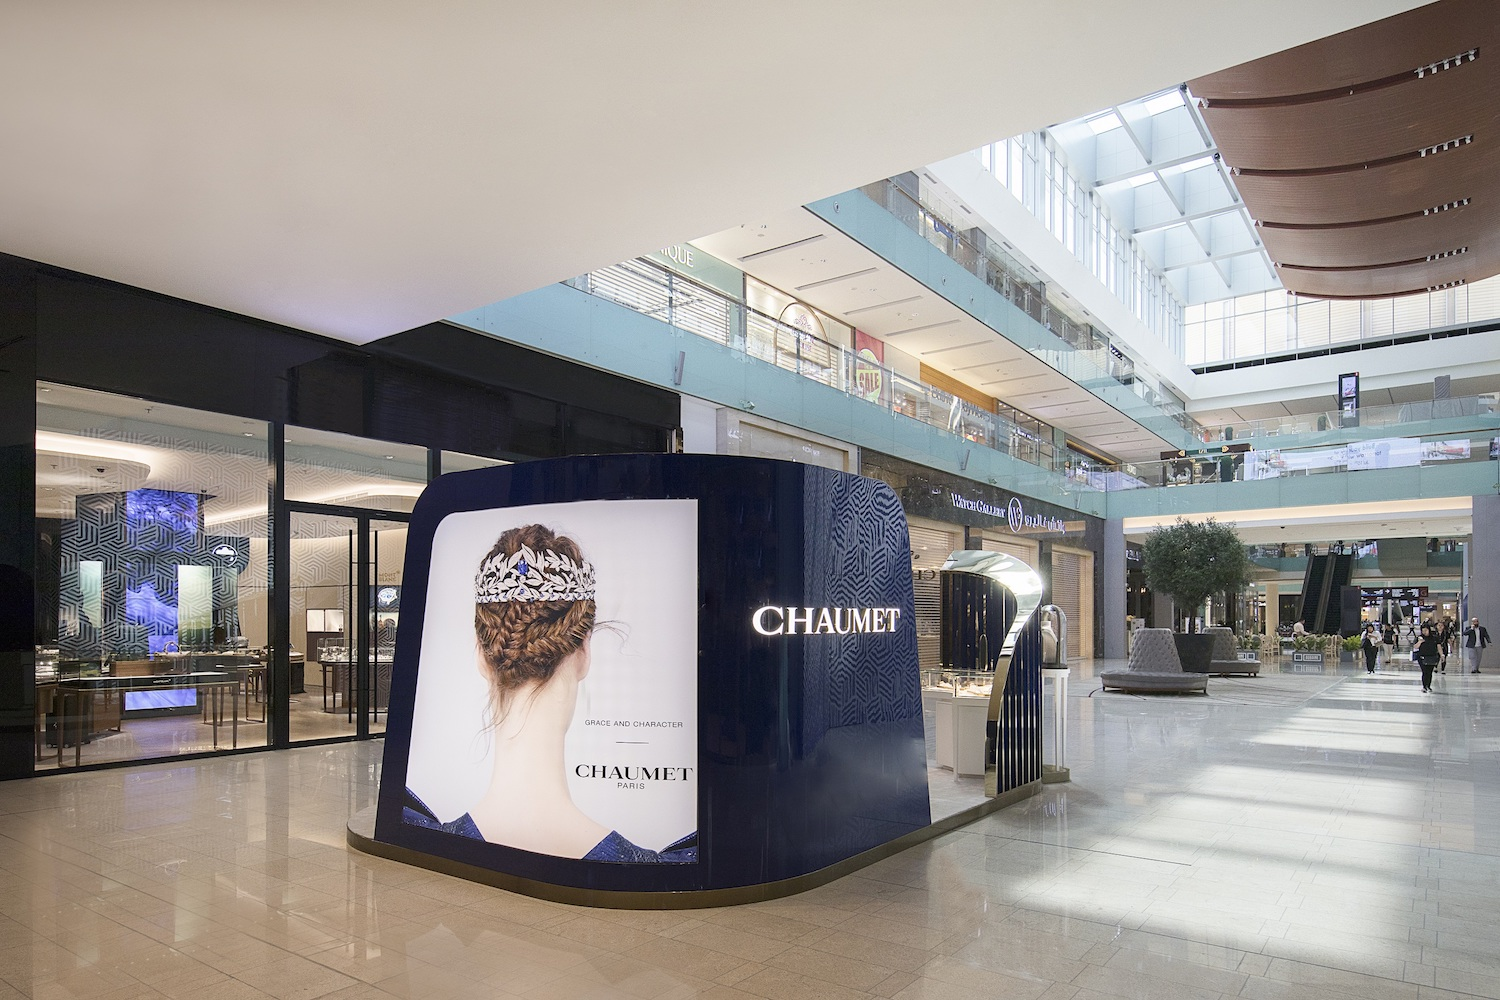 CHAUMET - Pop-up boutique at The Dubai Mall - July 2018